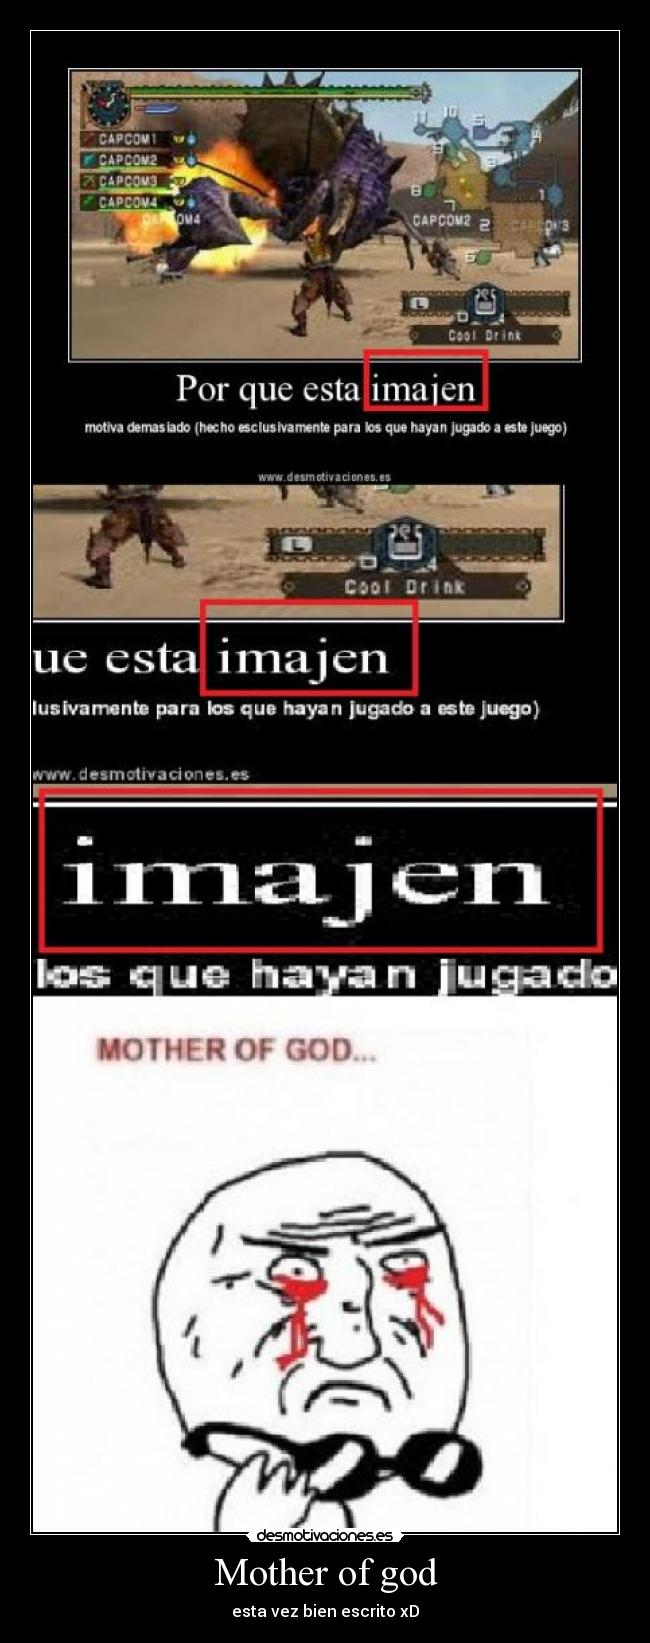 Mother of god - esta vez bien escrito xD